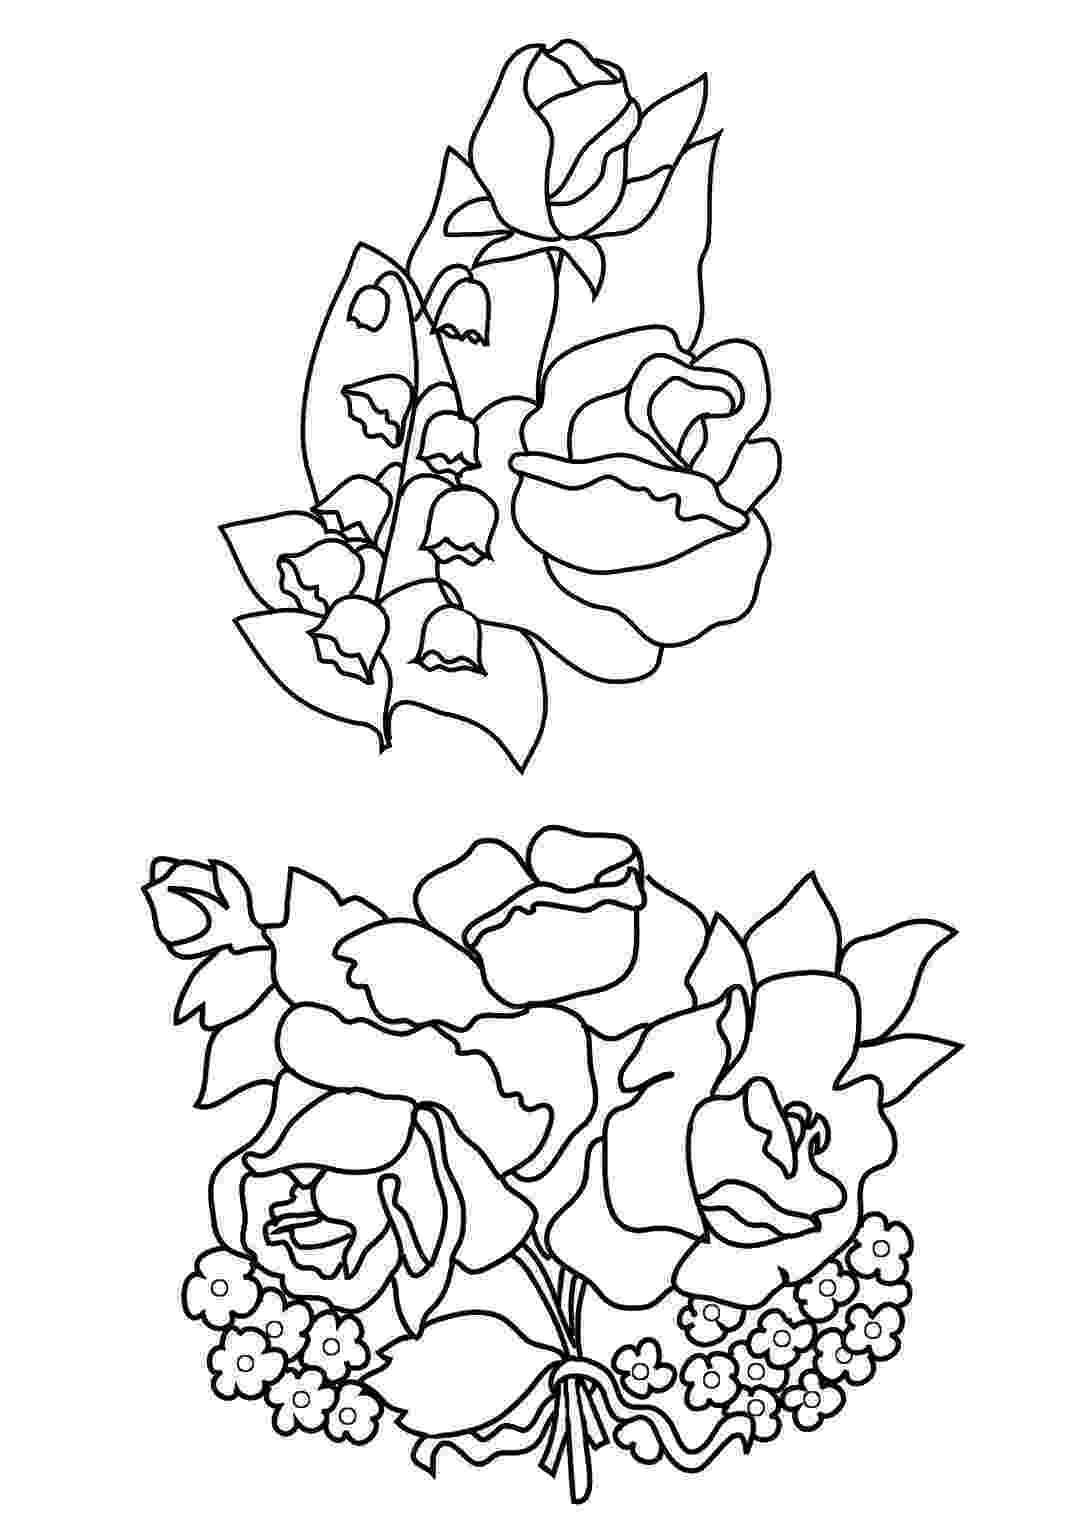 coloring flowers spring flowers coloring page crayolacom flowers coloring